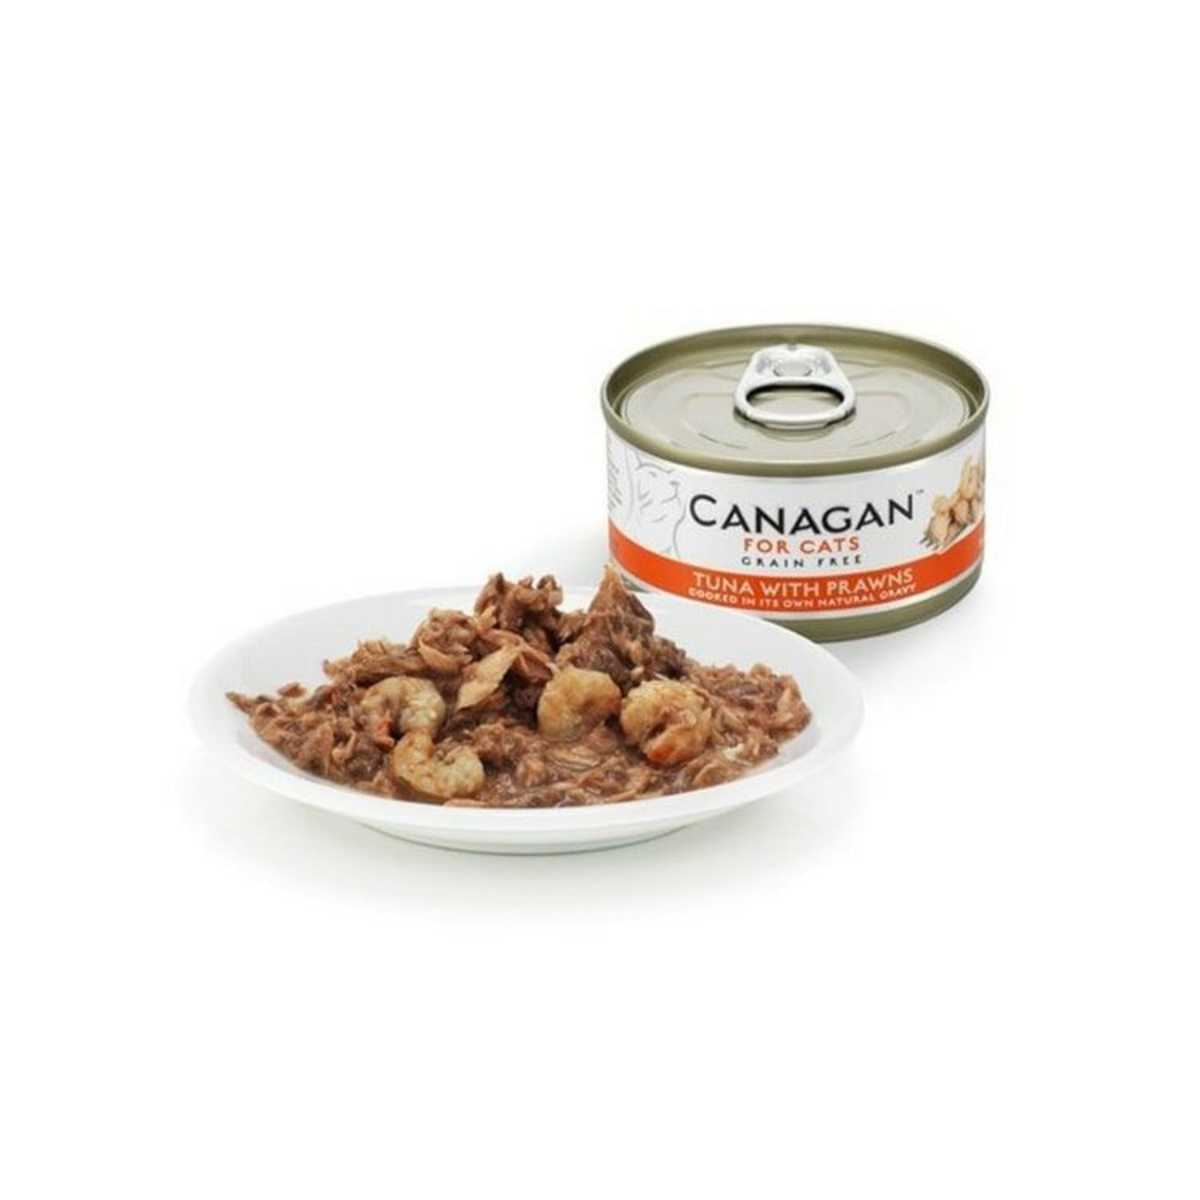 Canned gluten-free tuna with prawn cat  - 75g